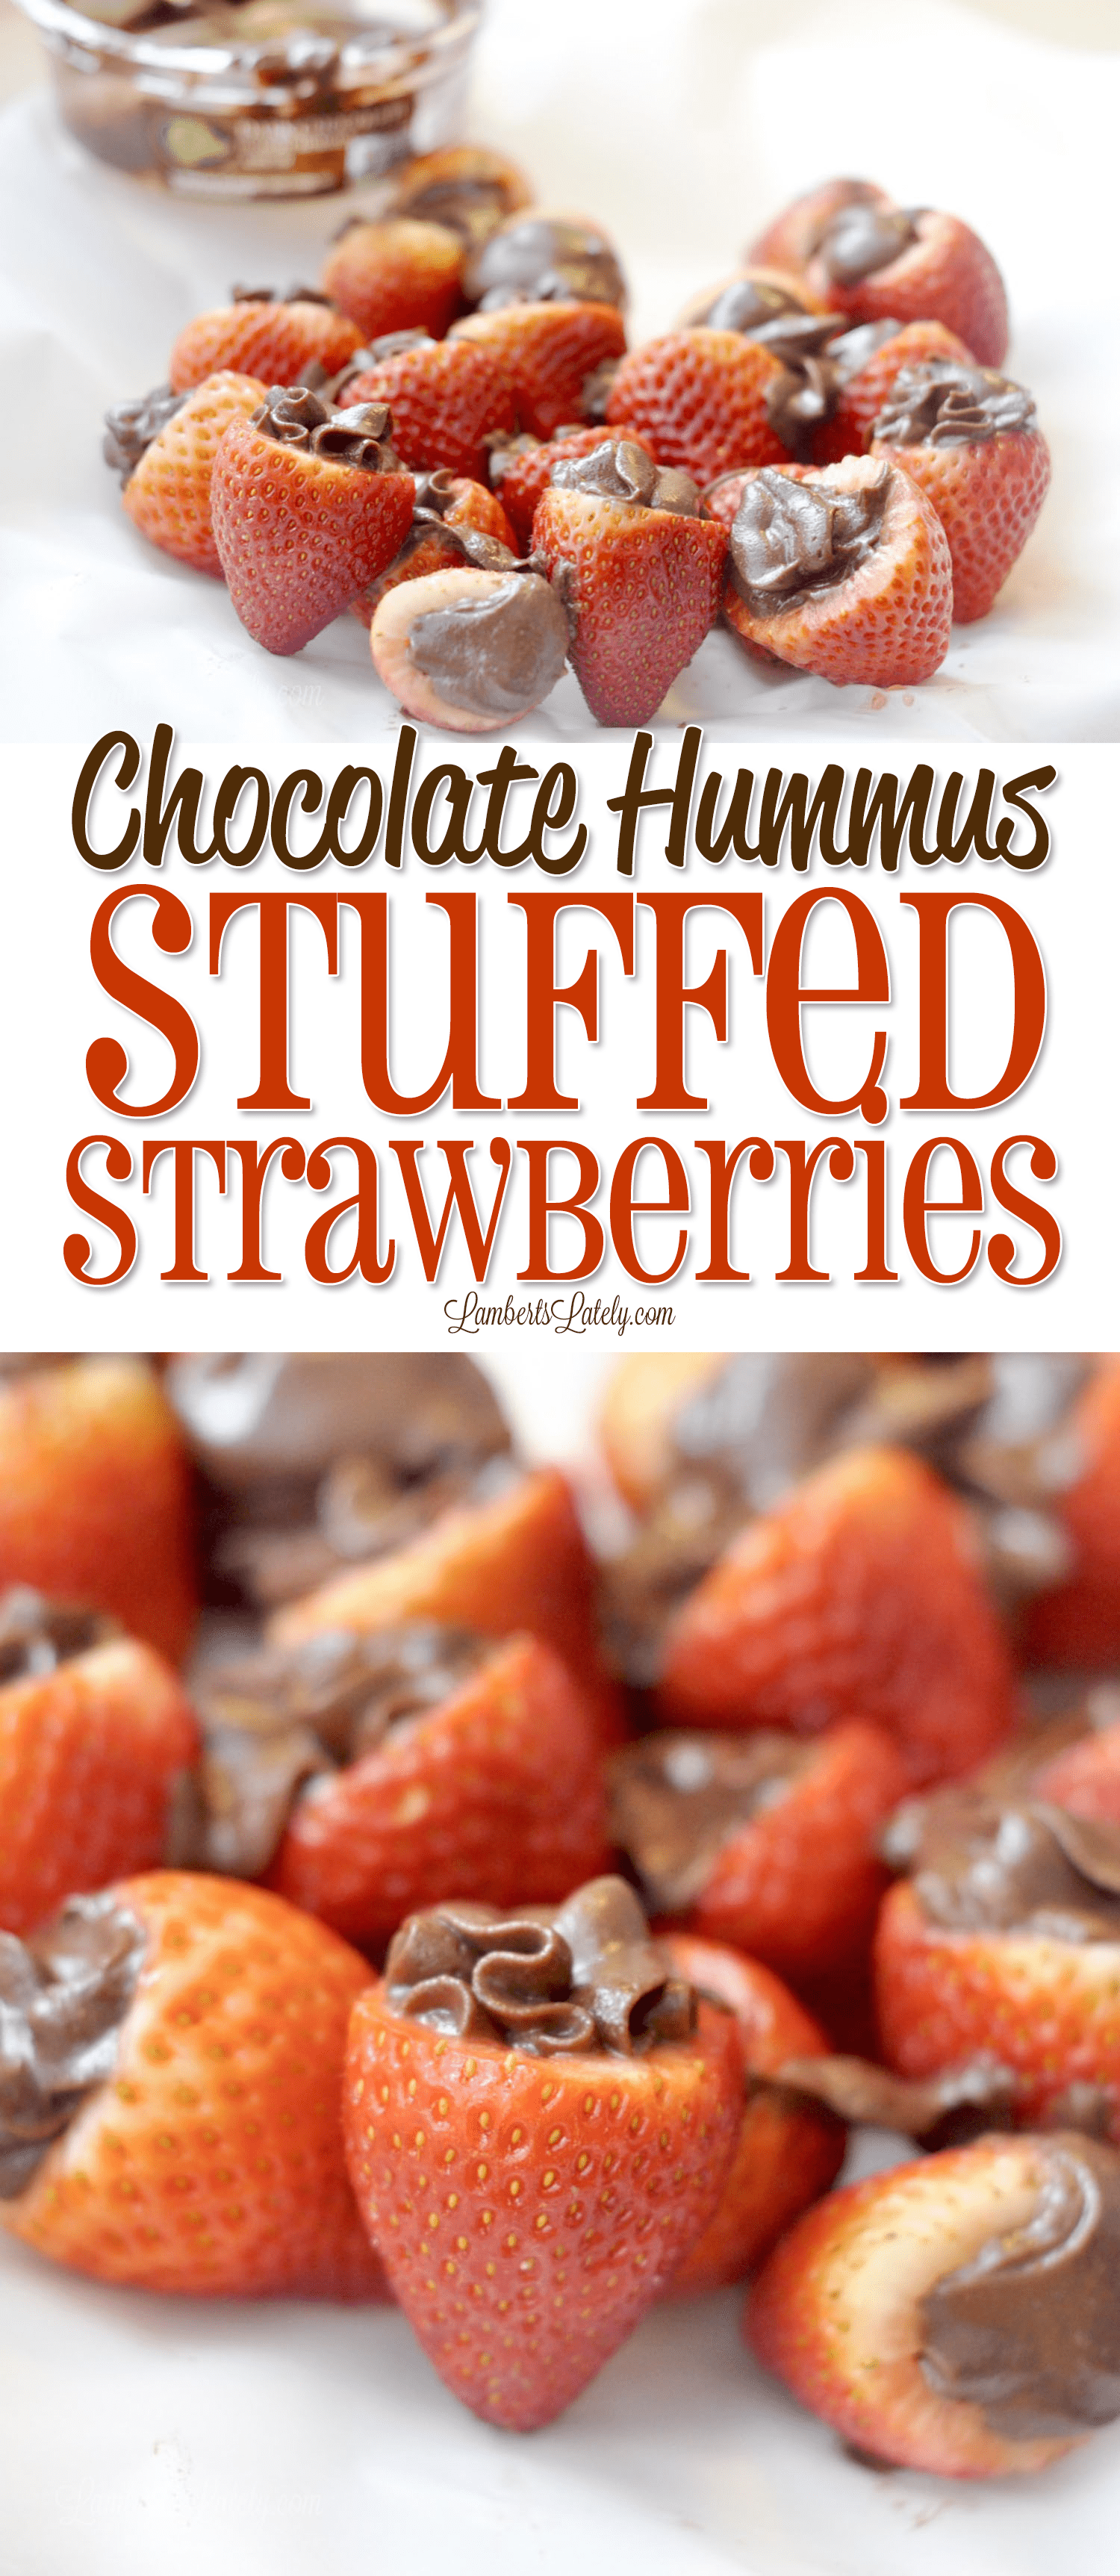 Chocolate Hummus Stuffed Strawberries are such a fun dessert! This healthy snack combines rich fruit and dark chocolate. If you're wondering what to do with chocolate hummus, this is it!